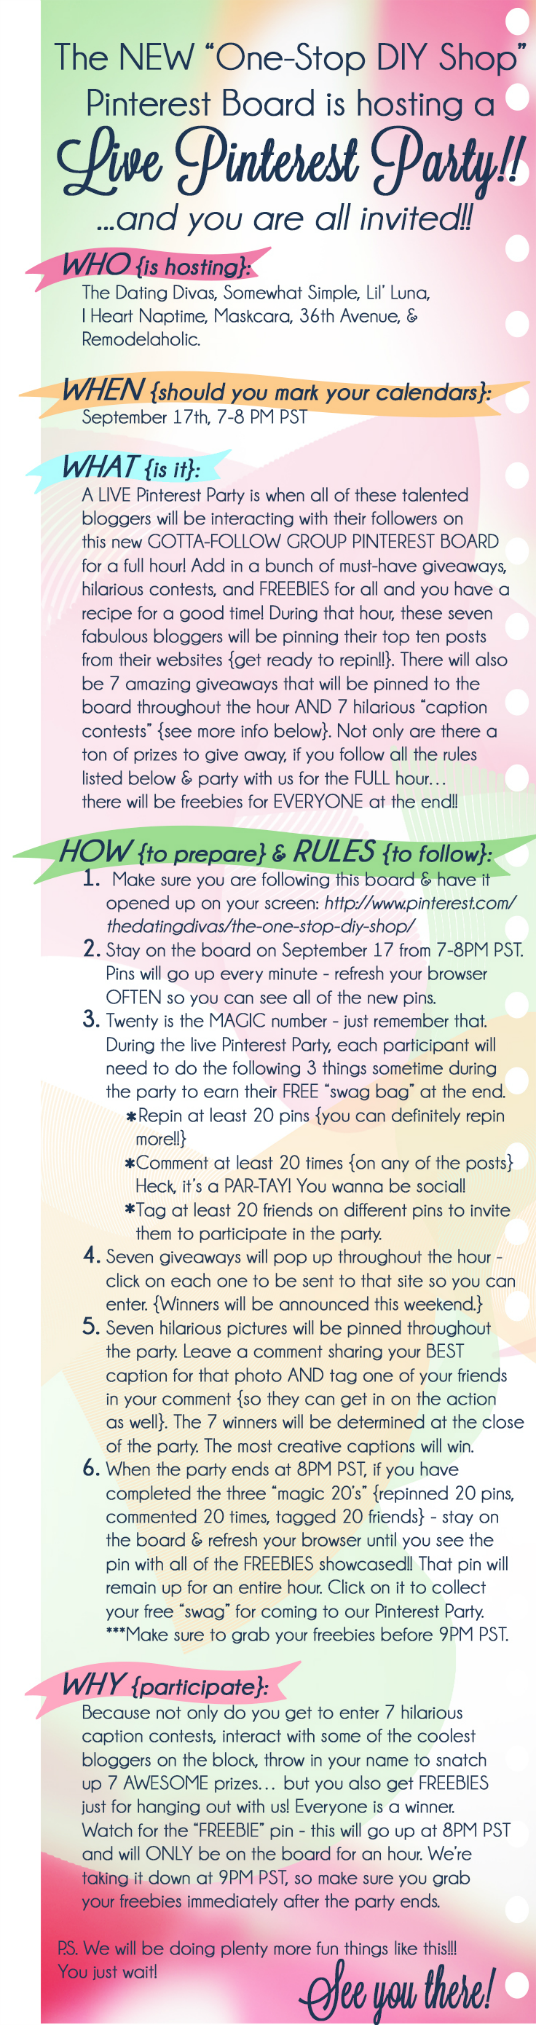 Party-announcement-and-Rules